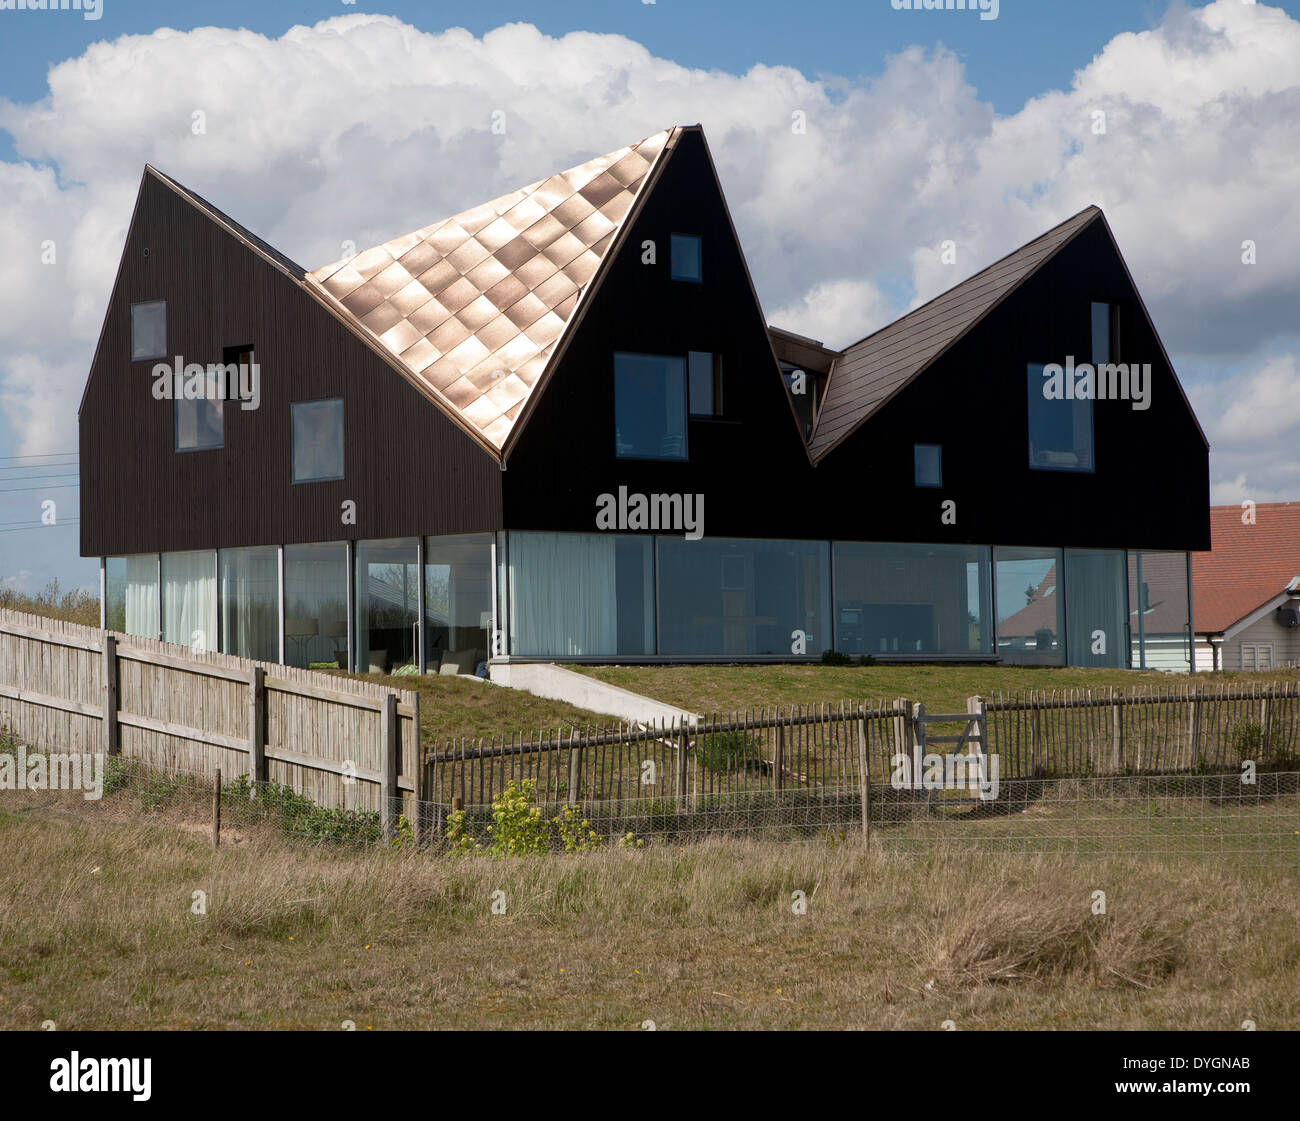 Sunshine shining on metal roof of modern house the dune house on the stock photo royalty free - The dune house the floating roof ...